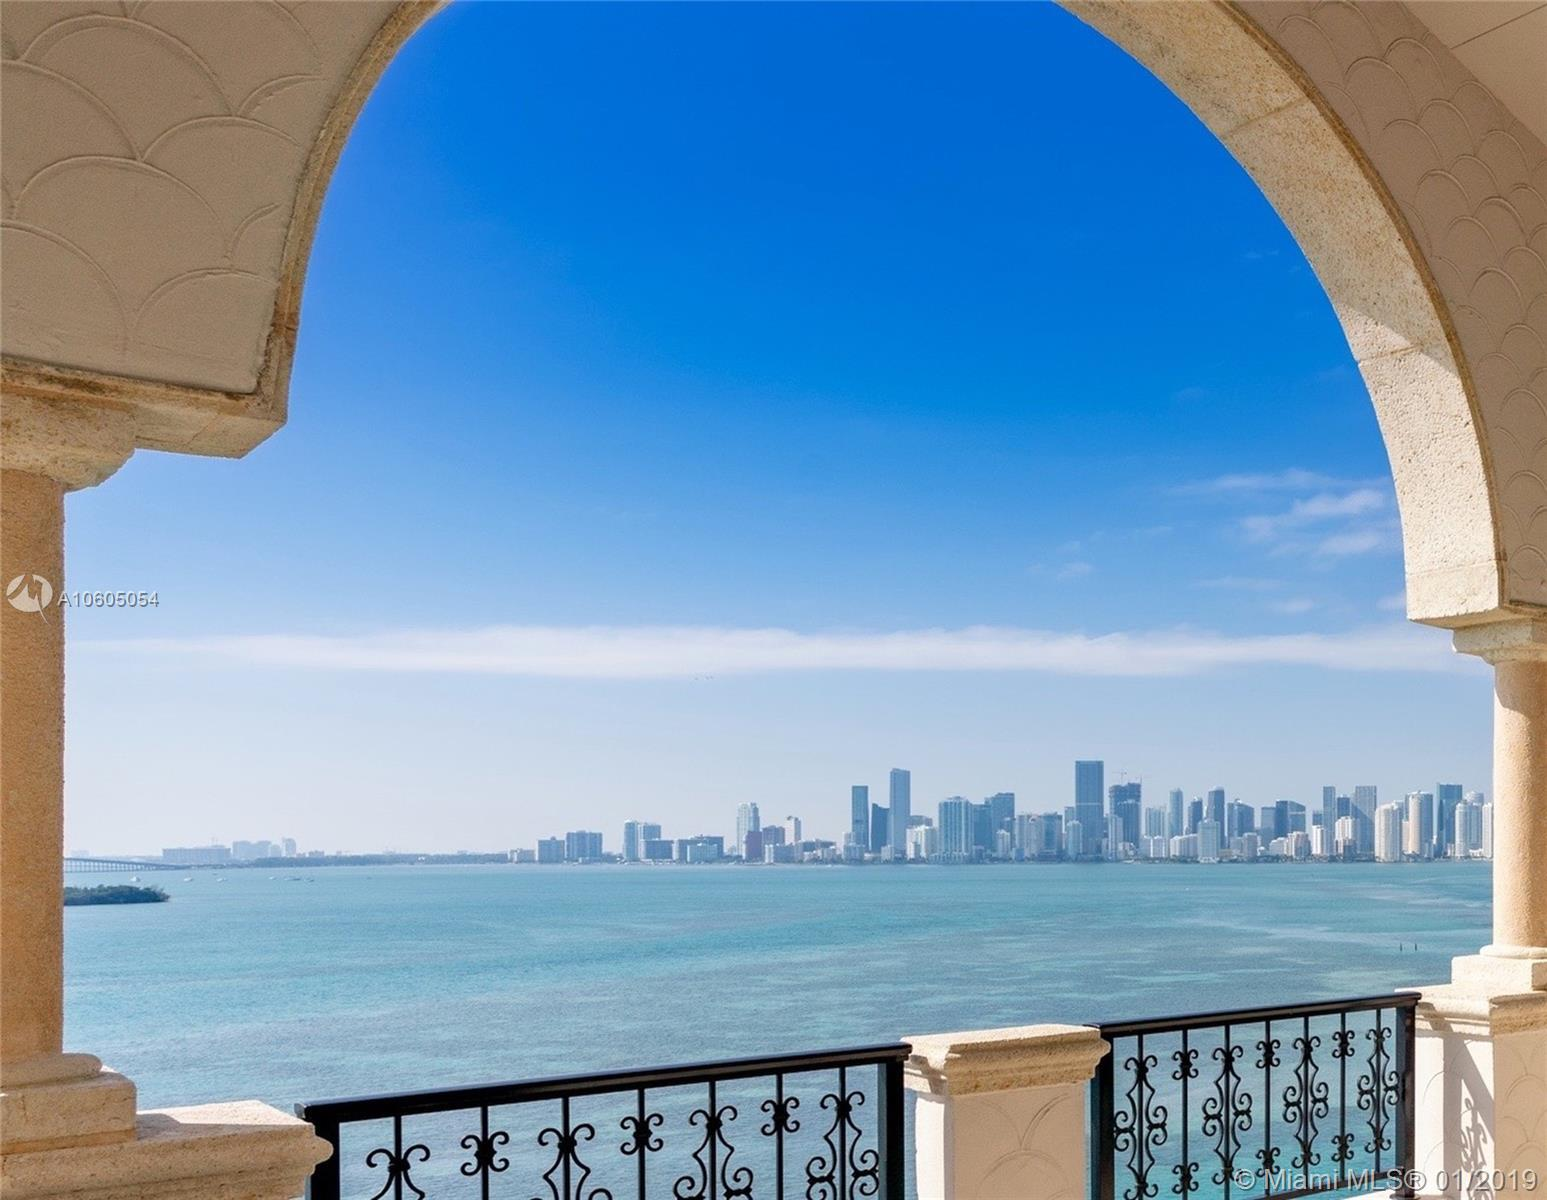 Largest unit available on Fisher Island made up of 9,570 interior sq ft. Sweeping open bay views outlined by the iconic Miami skyline on one side and natural beautiful green views of Virginia Key on the other. This PH residence recently underwent a total 3 yr renovation led by designer Marc-Michaels Interior Design. 5/5/1 with generous living space perfect for your private enjoyment and/or for entertainment. Features include: high ceilings throughout, Crestron system with security cameras, fully equipped Downsview kitchen, Tishler impact doors, 2 washer and dryer set, separate duo bath and independent staff apartment. Amenities include: private island dining, golf, tennis, spa, marina, private beach, Fisher Island Day School. 5 parking spaces , 2 golf cart spaces